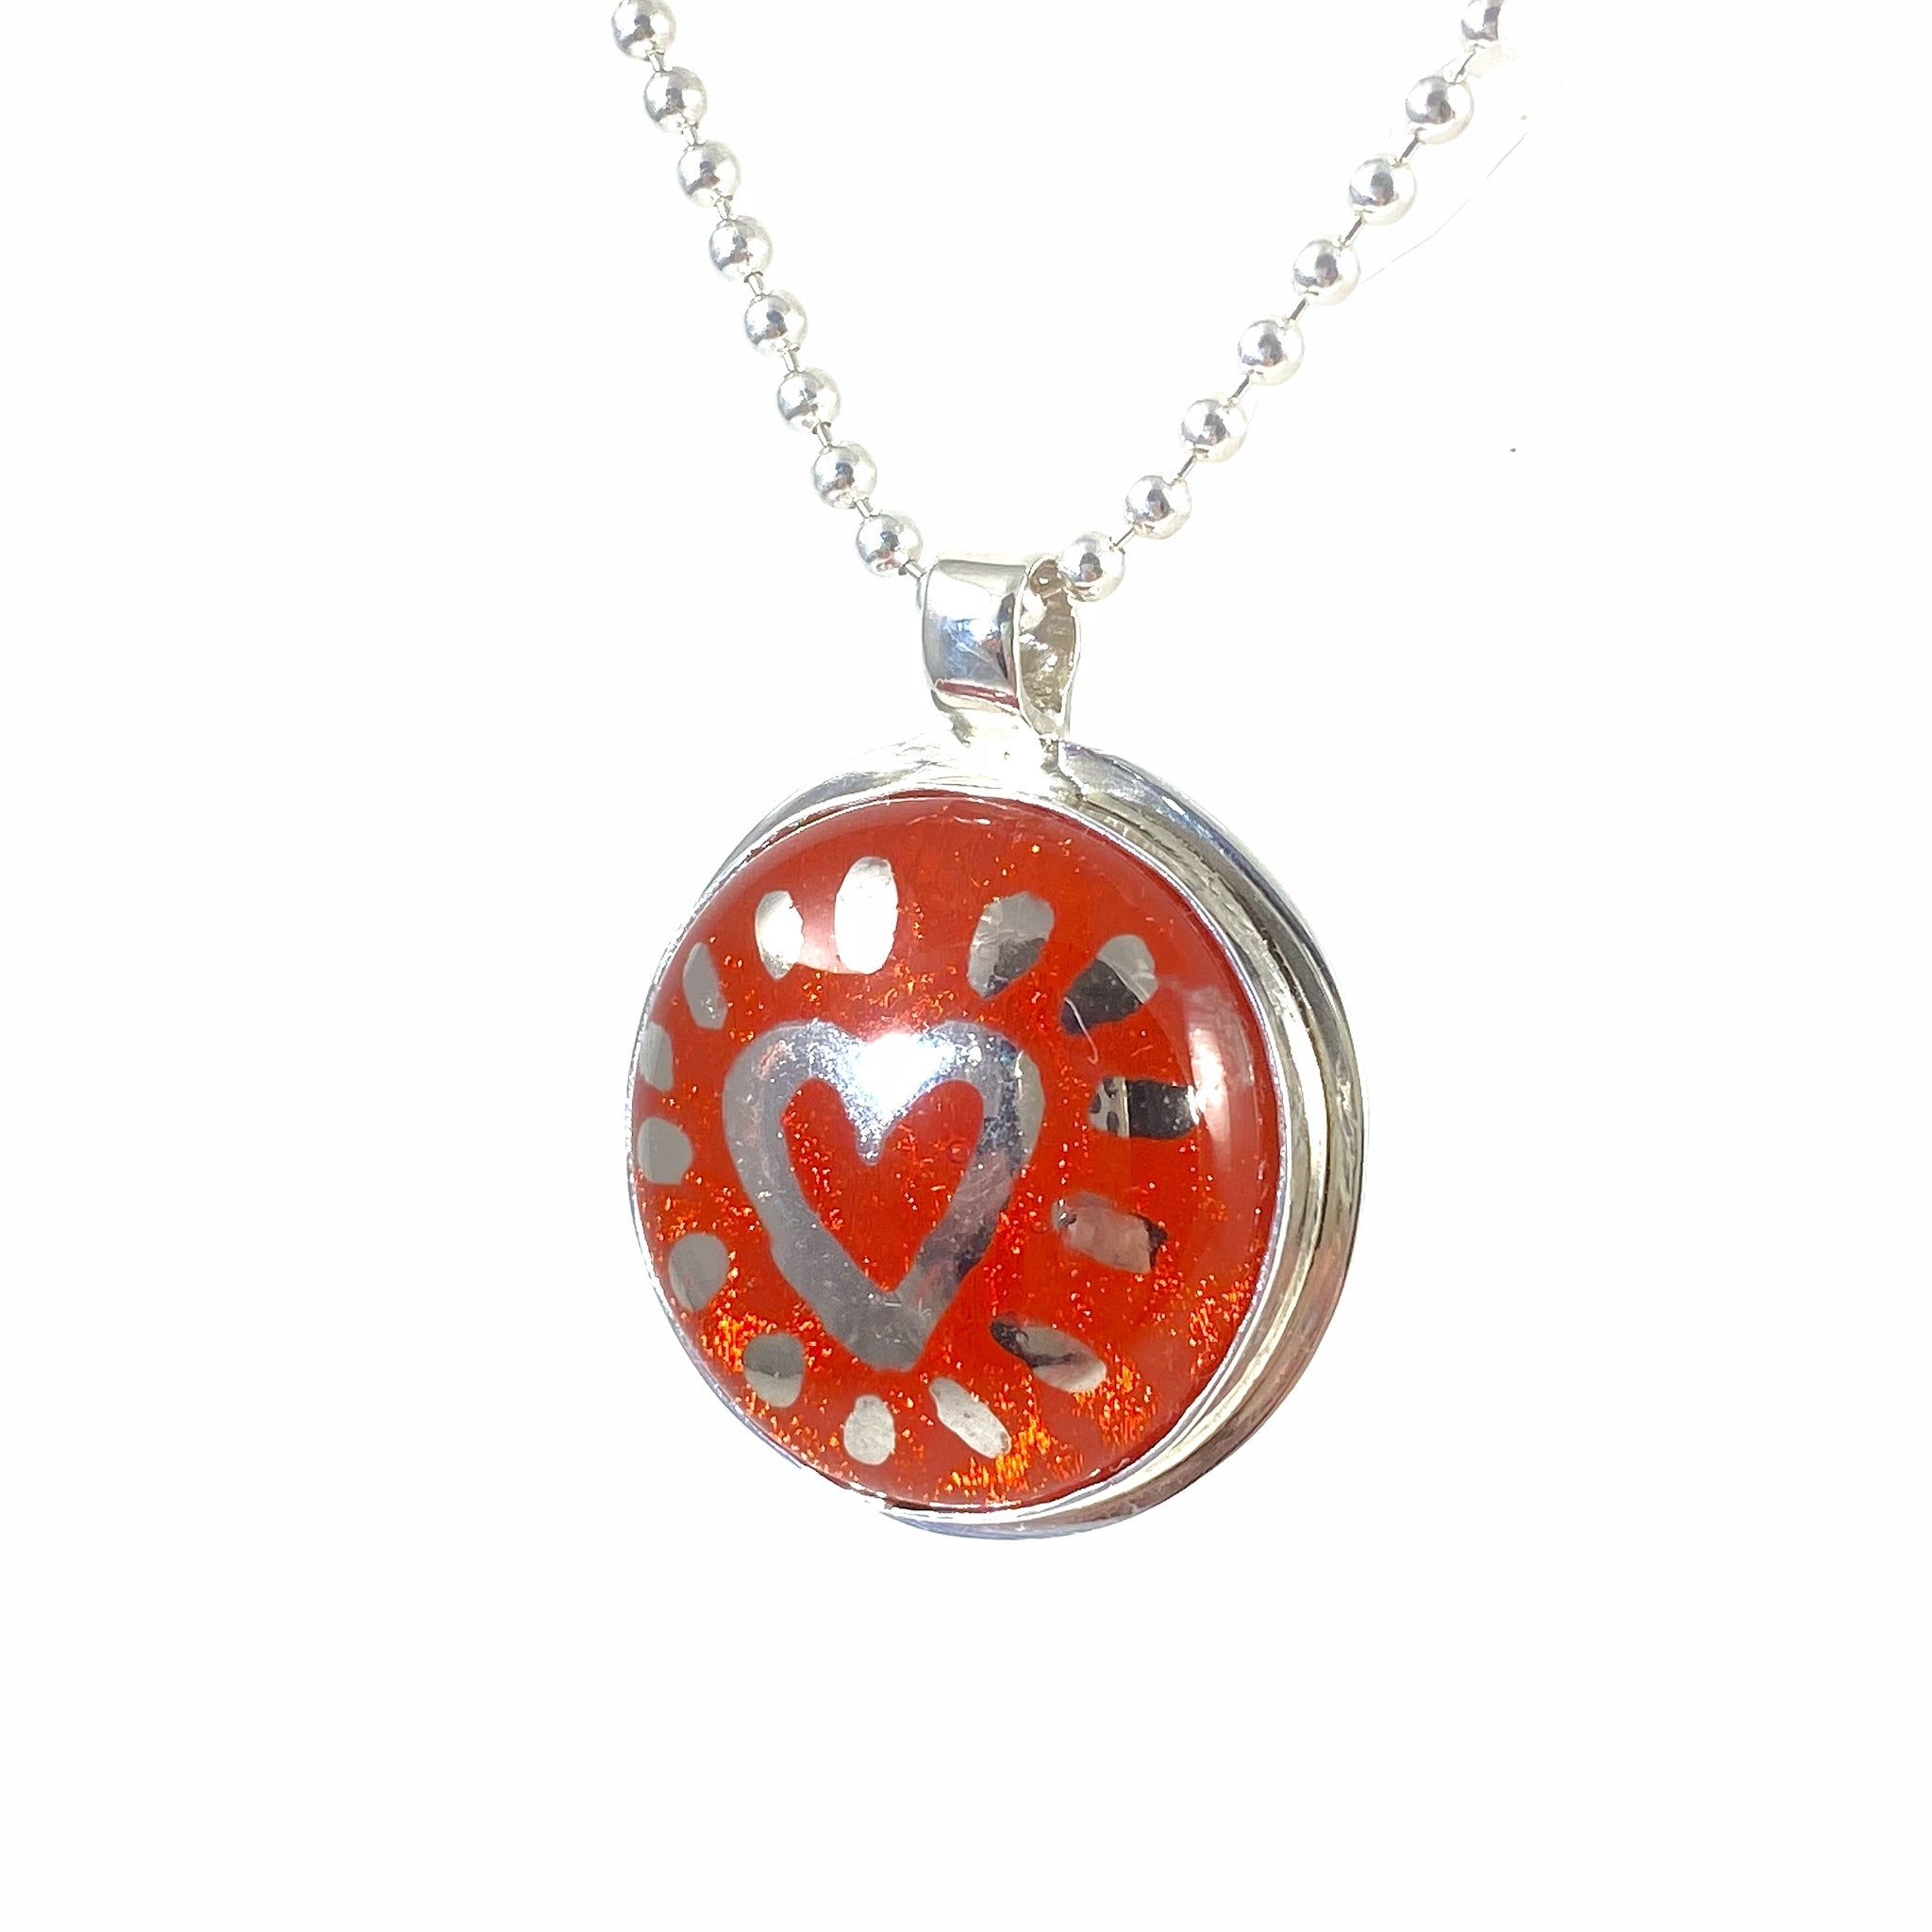 Painted Heart Necklace in Tangerine